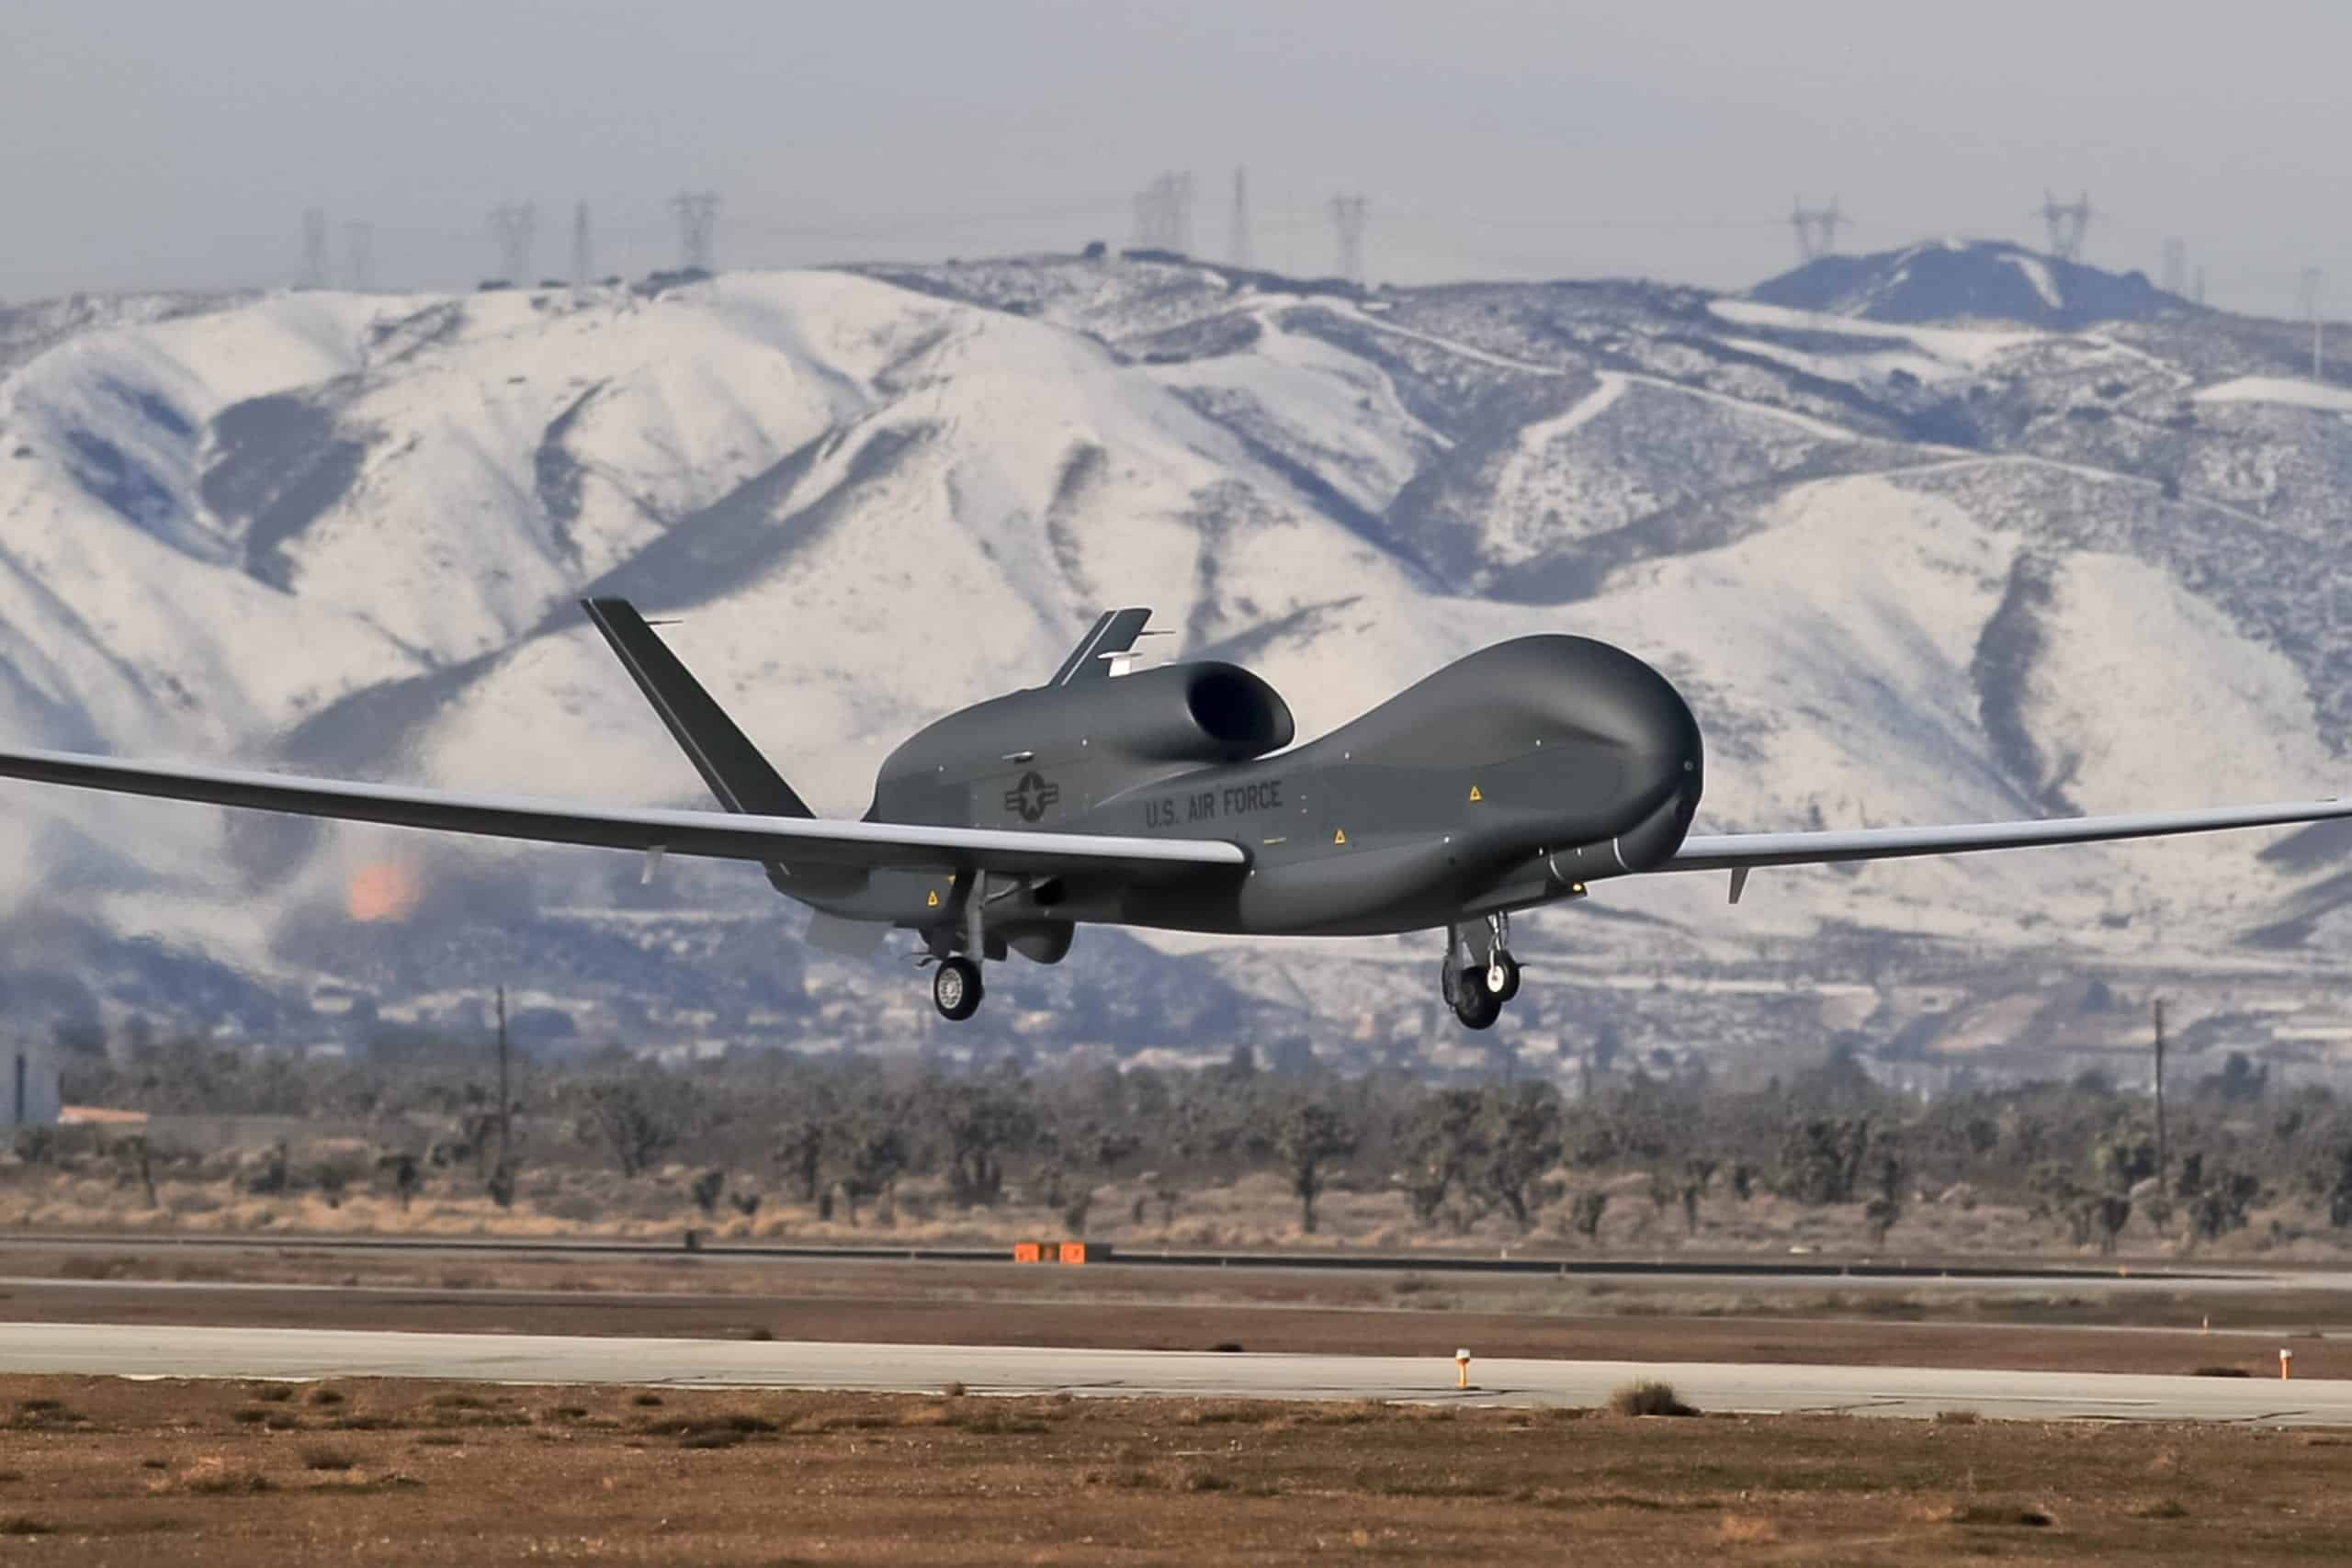 Global Hawk Uas Variants Exceed 100 000 Combat Operational